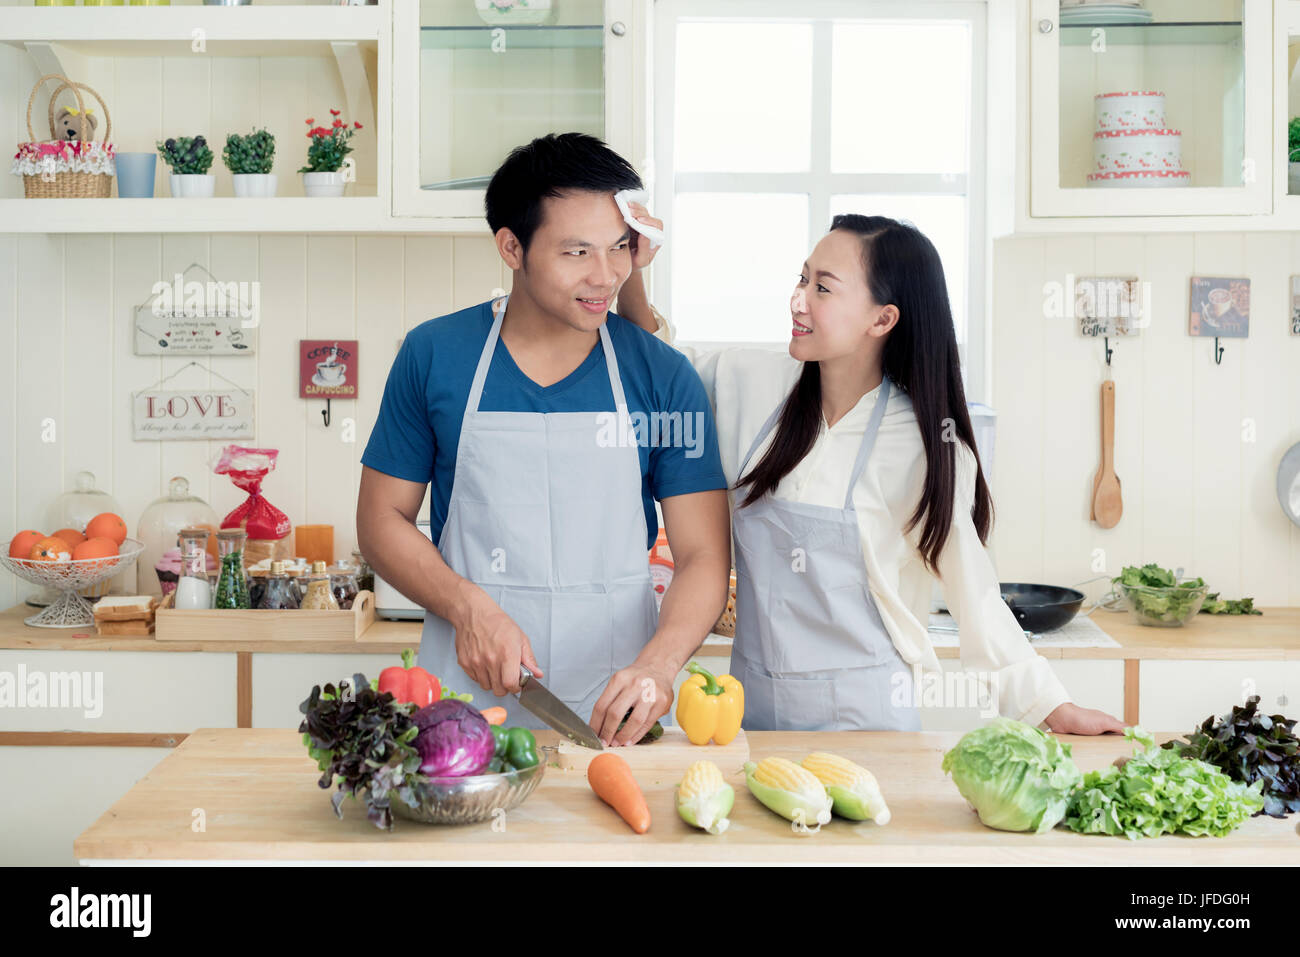 Asian beautiful young wife helping husband dry sweat off his face in kitchen at home. Happy love couple concept. Stock Photo